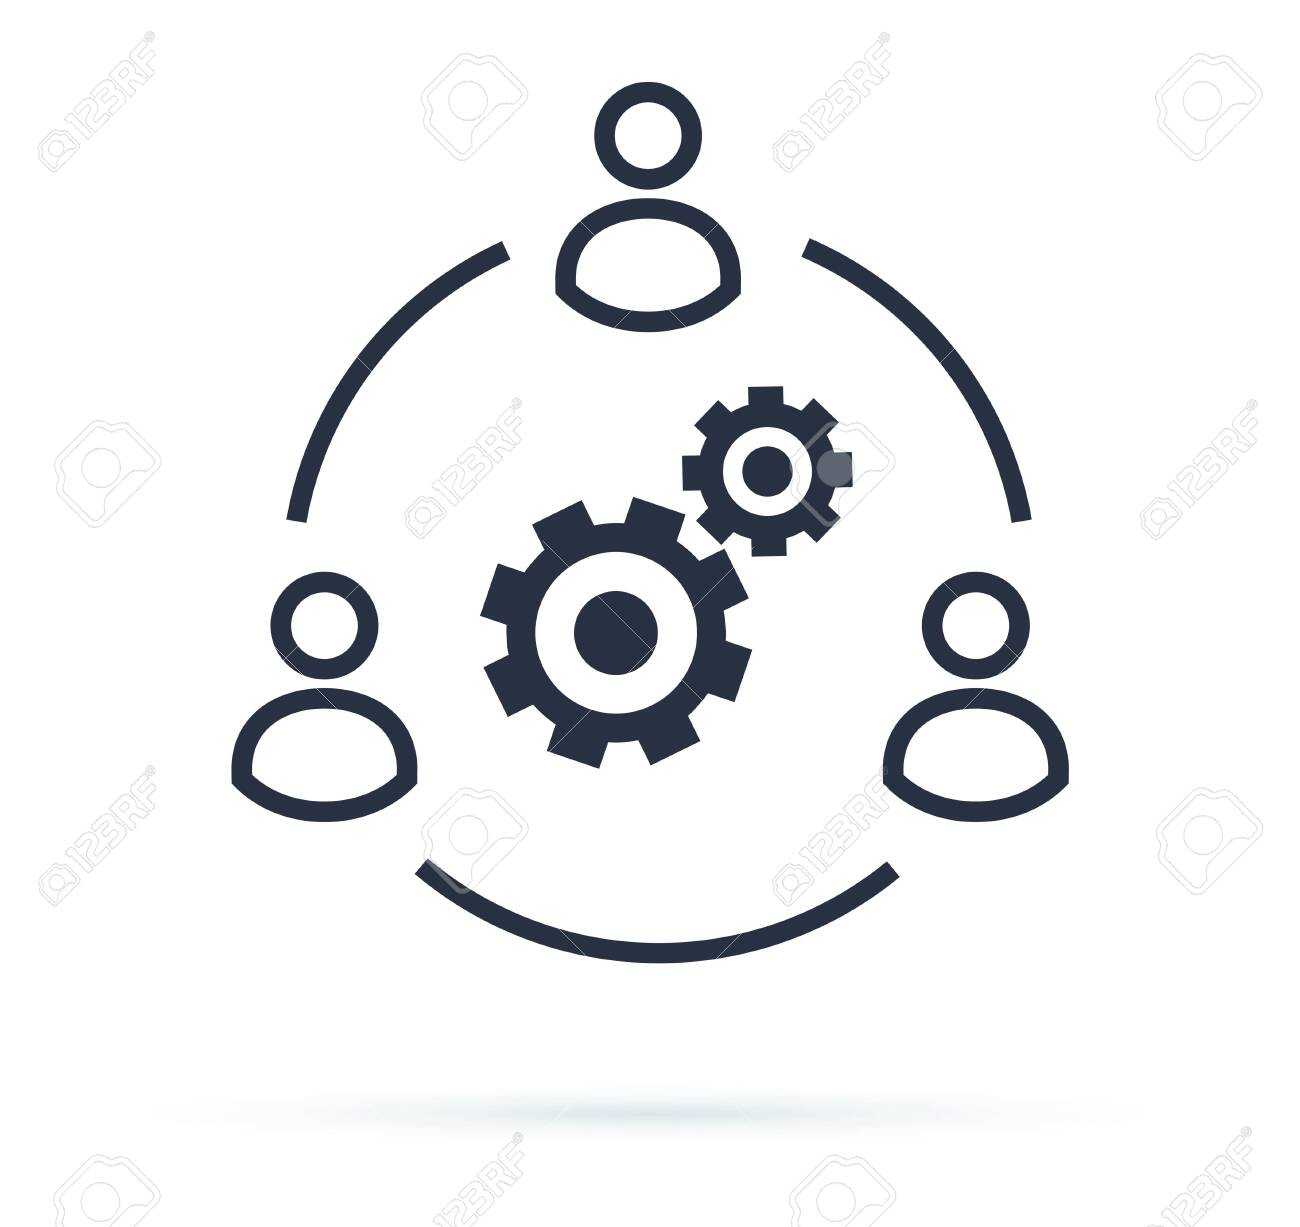 Business collaborate icon vector image. Teamwork Corporation Concept. Conceptual icon of businessteam working cohesively. Interaction and unity. Togetherness, brainstorm vector sign isolated on white. - 123990190